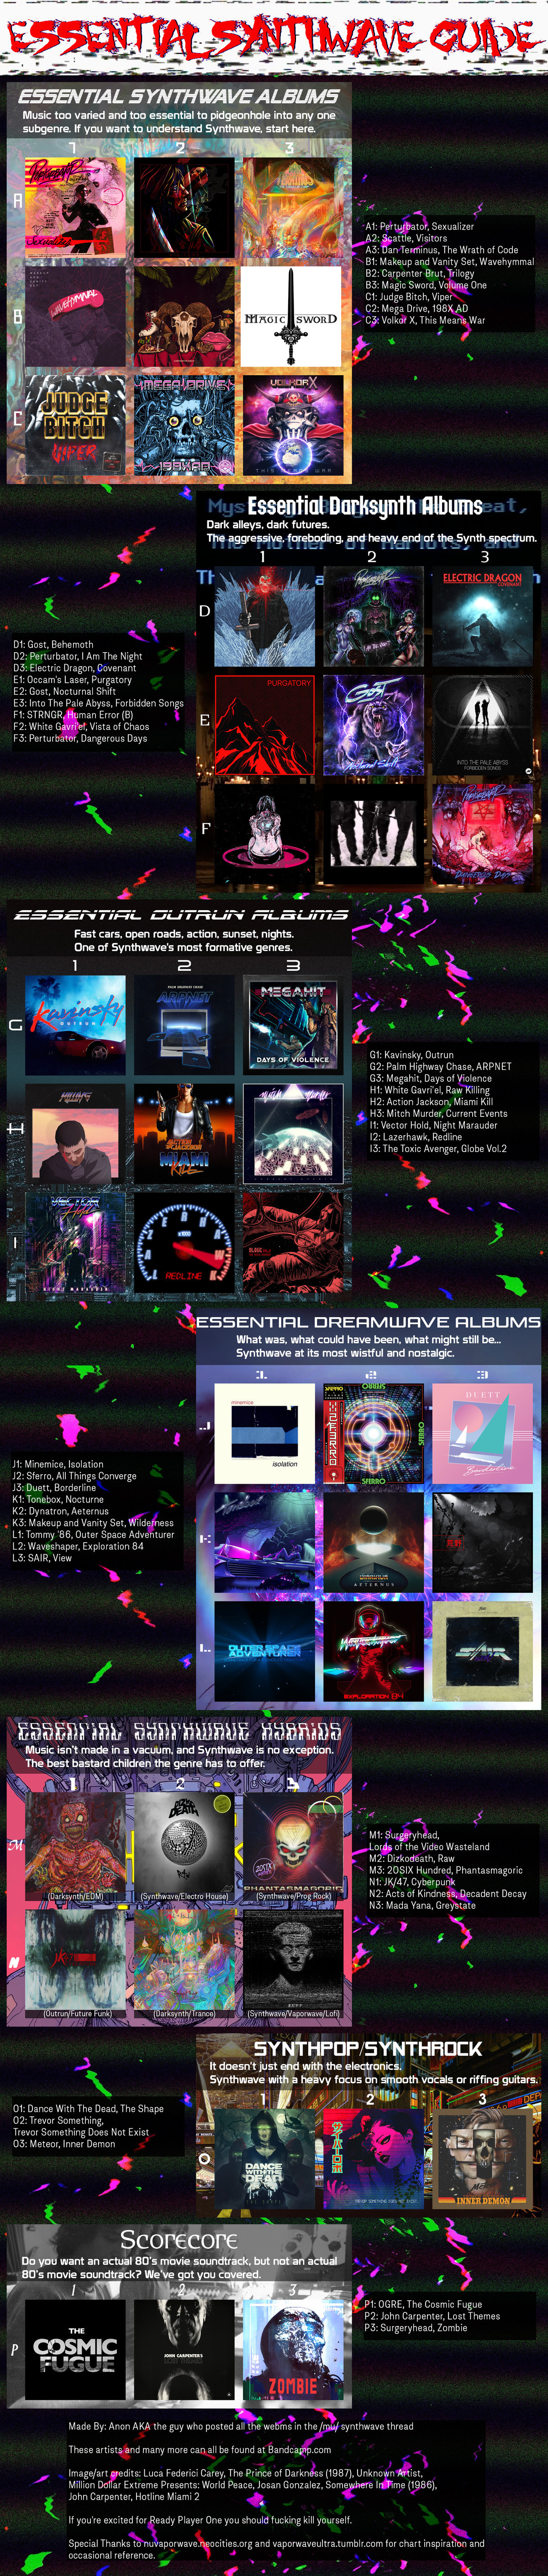 Synthwave Chart. Grabbed out of 8/mu/, it's inspired by the old Vaporwave Ultra chart... No Com Truise?